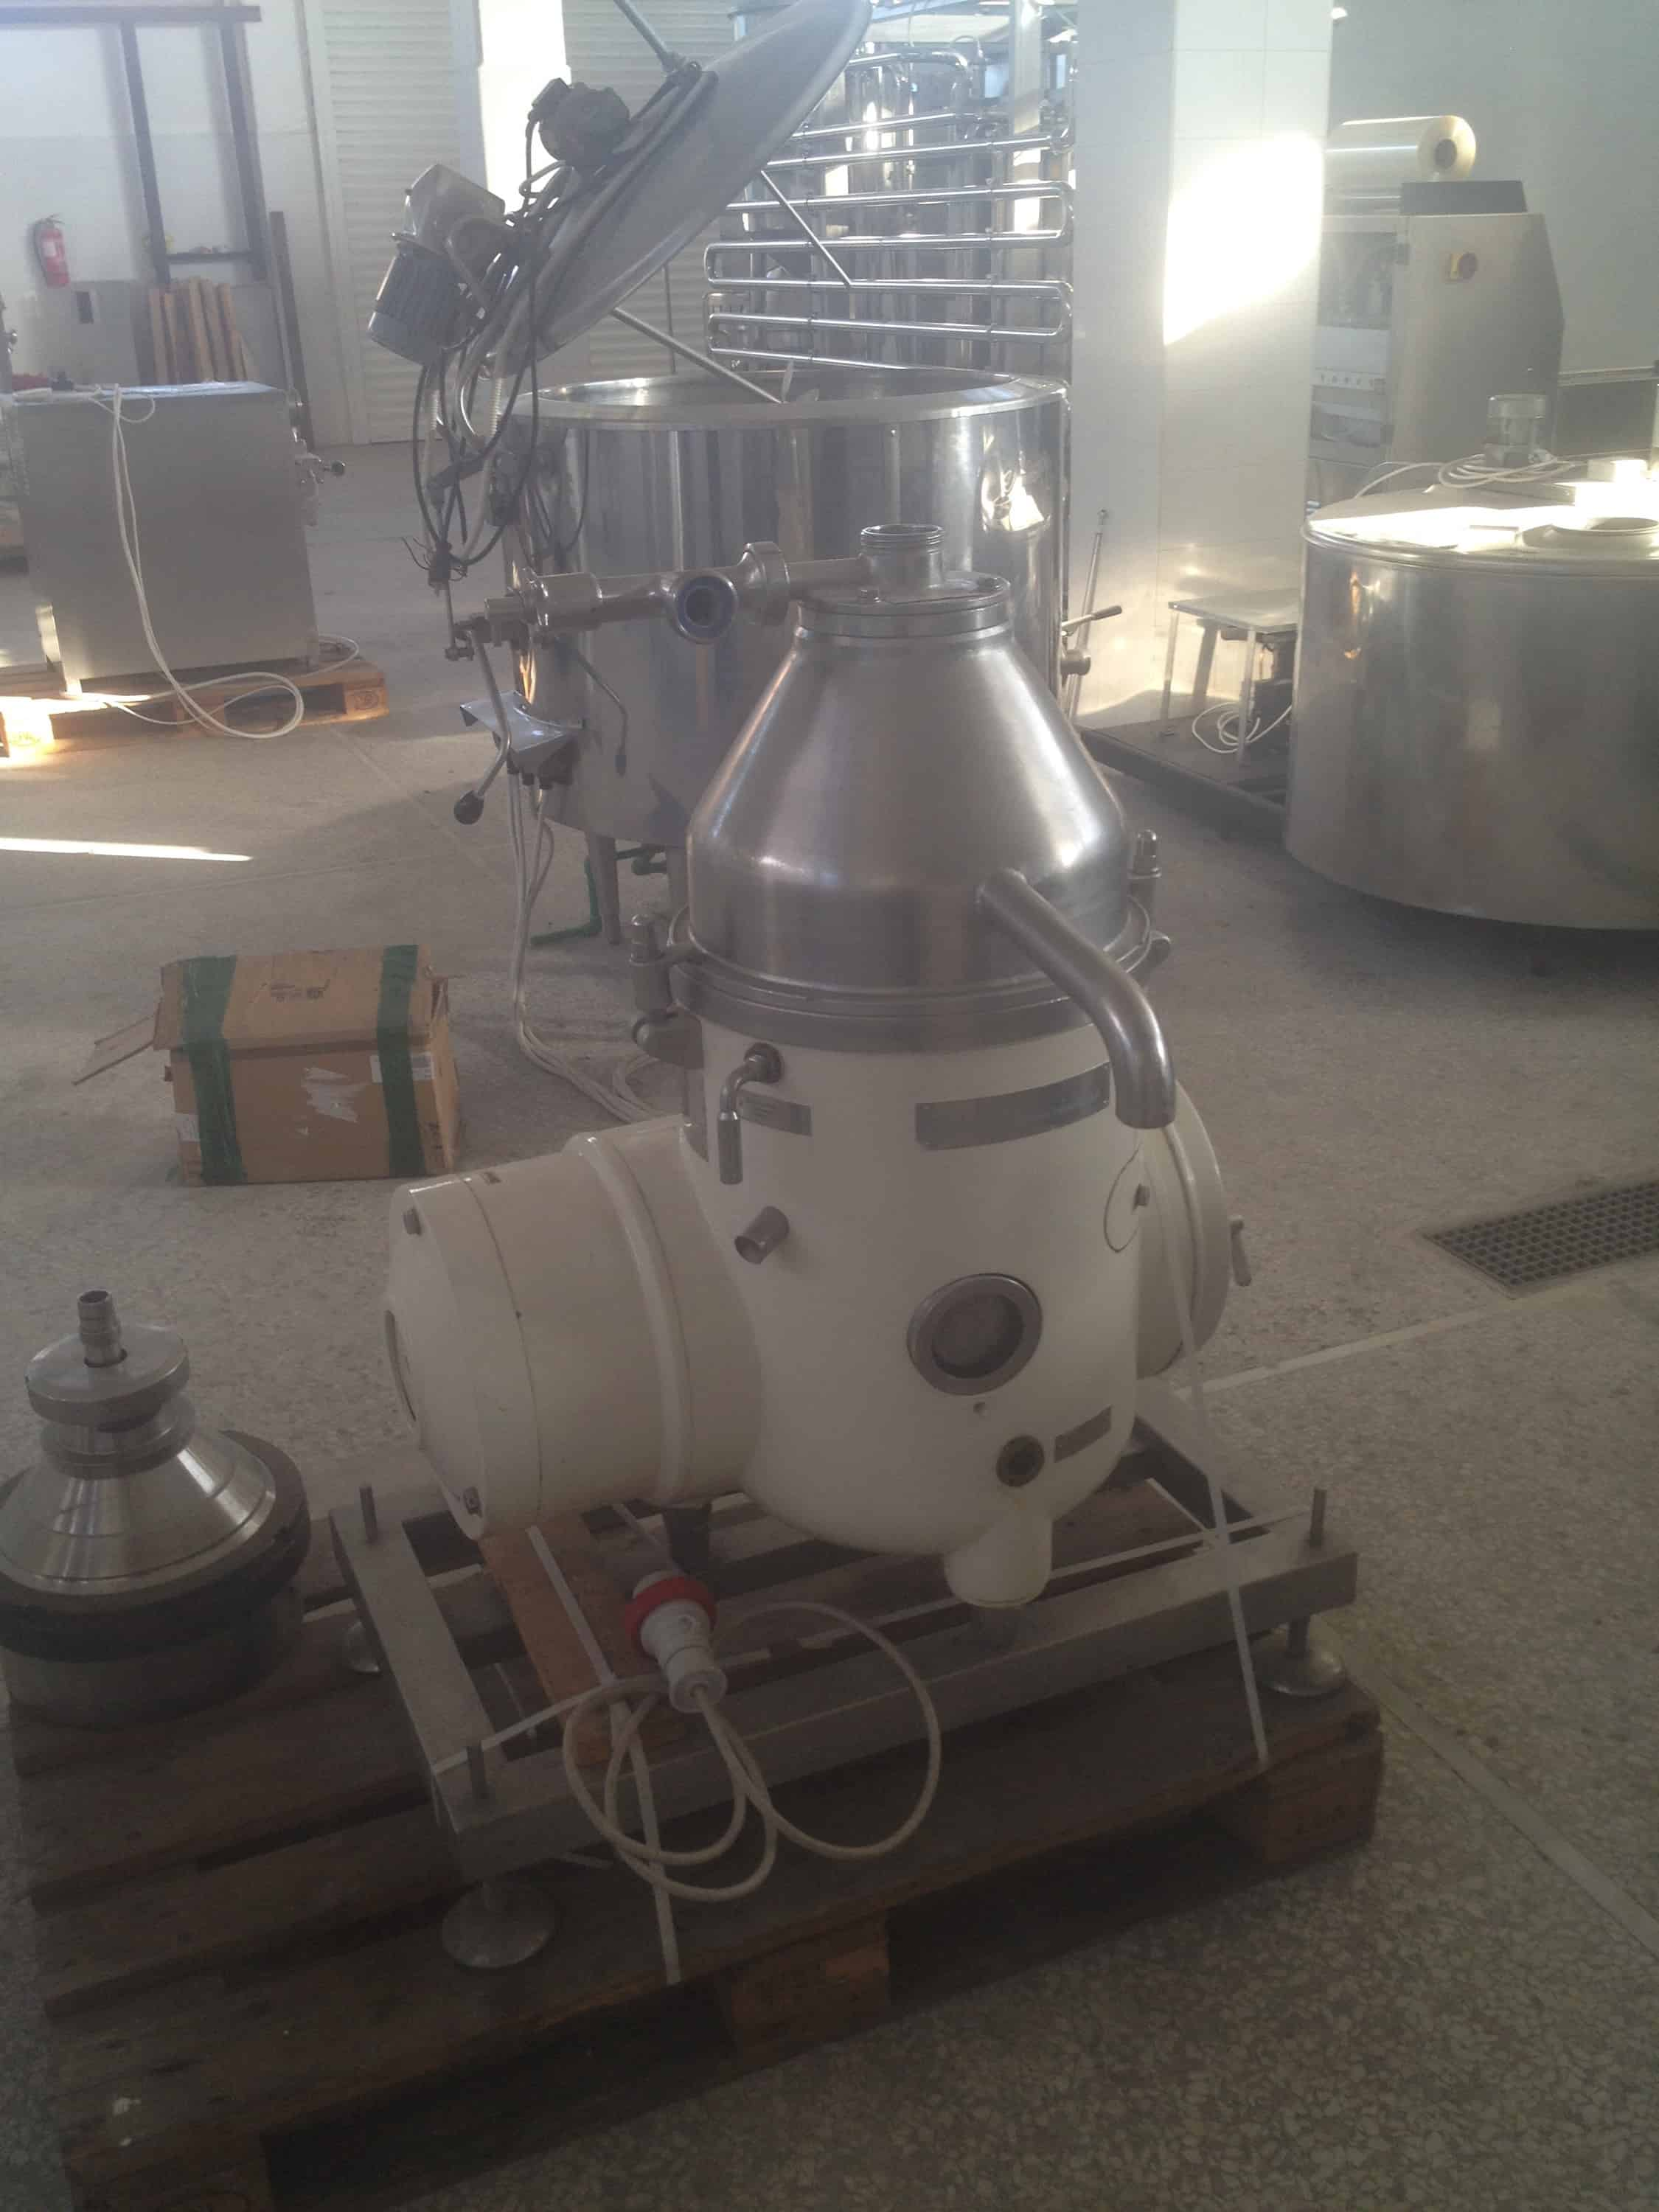 Westfalia Separator, 1000-1500 L, Recently Refurbished, Very Good Condition